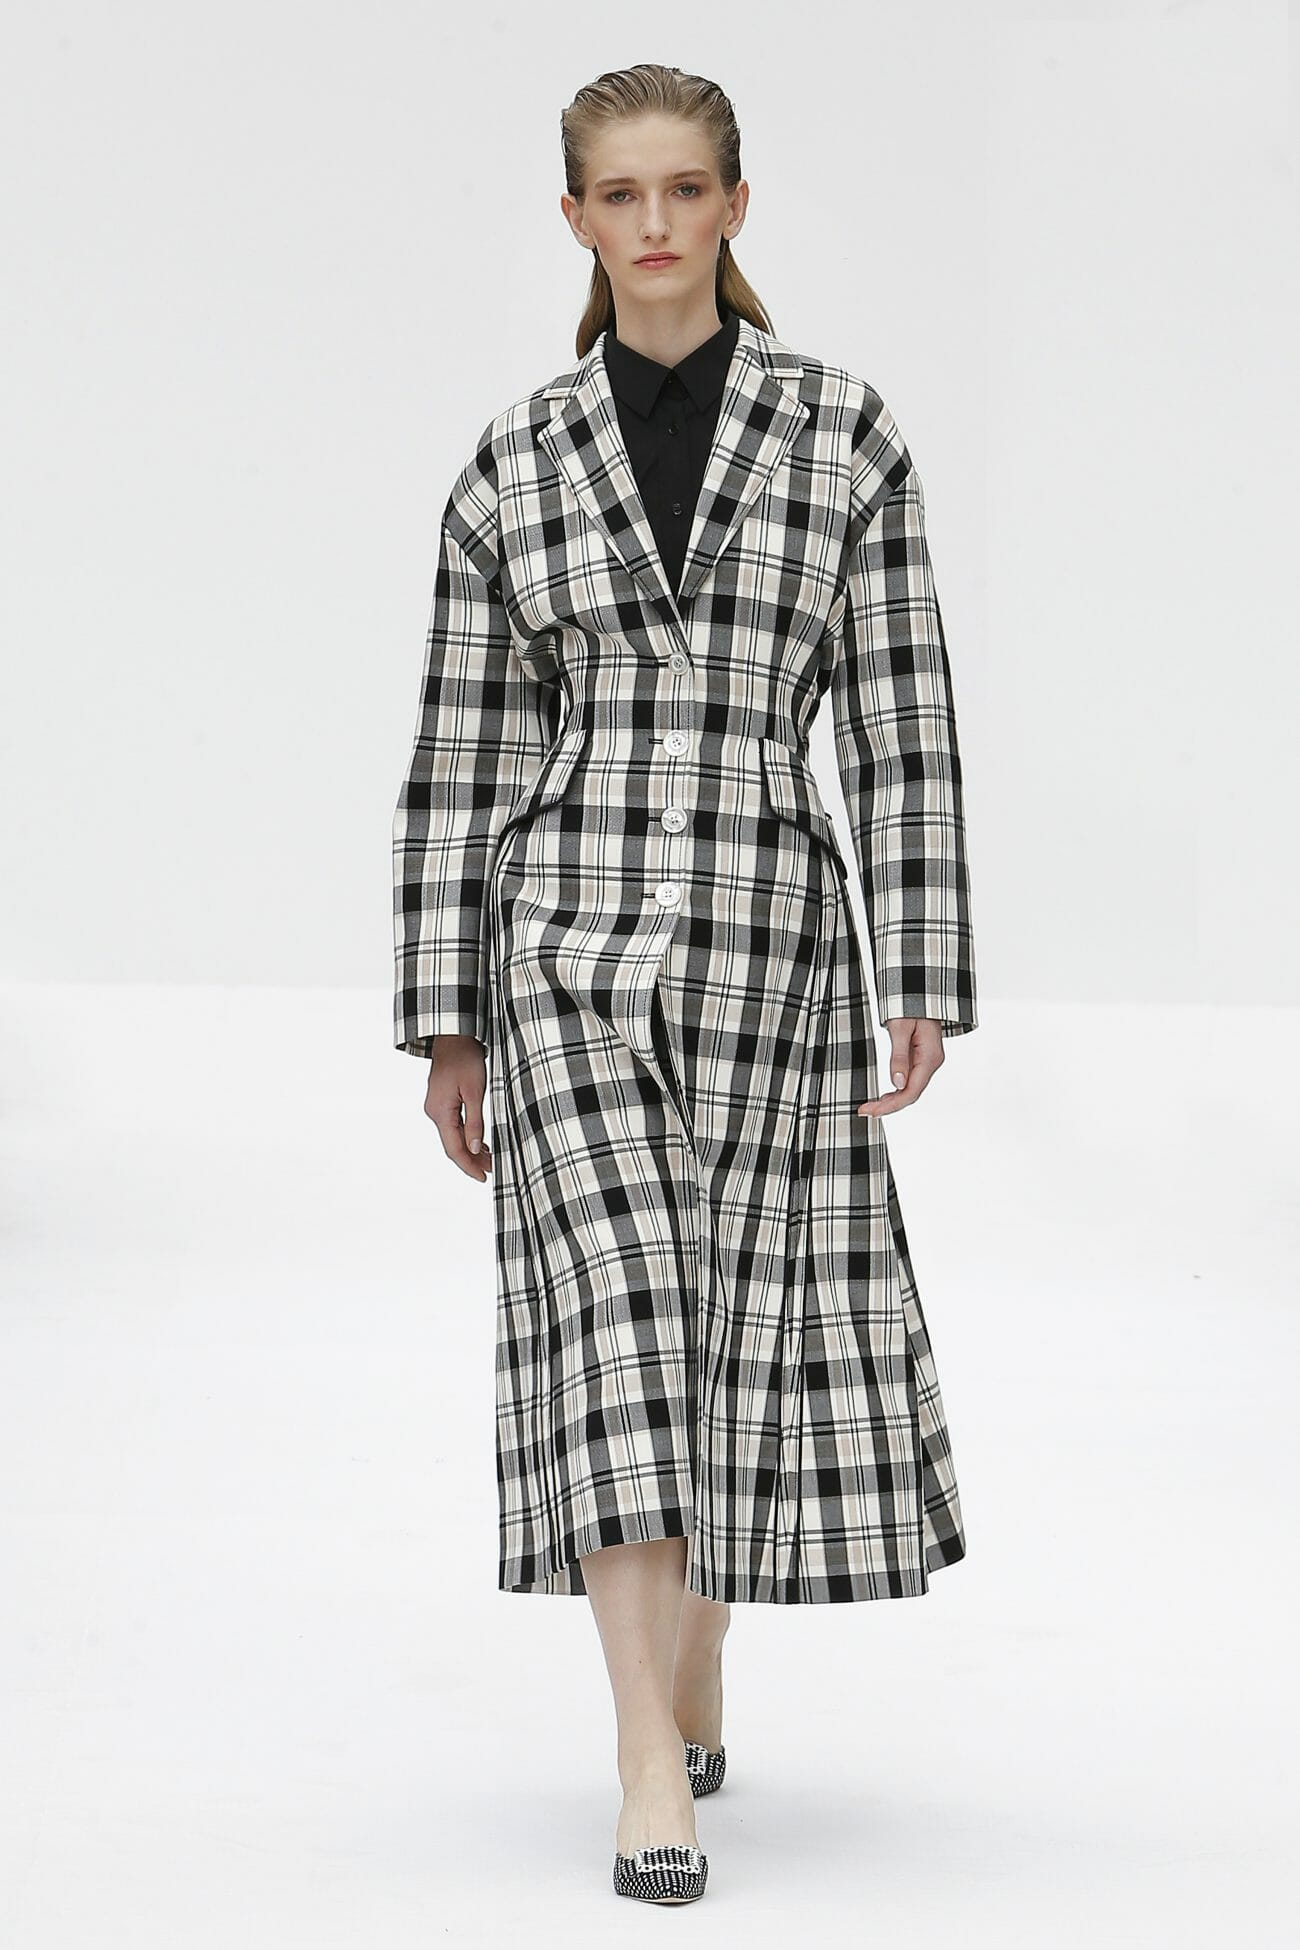 Carolina Herrera New York trench coat